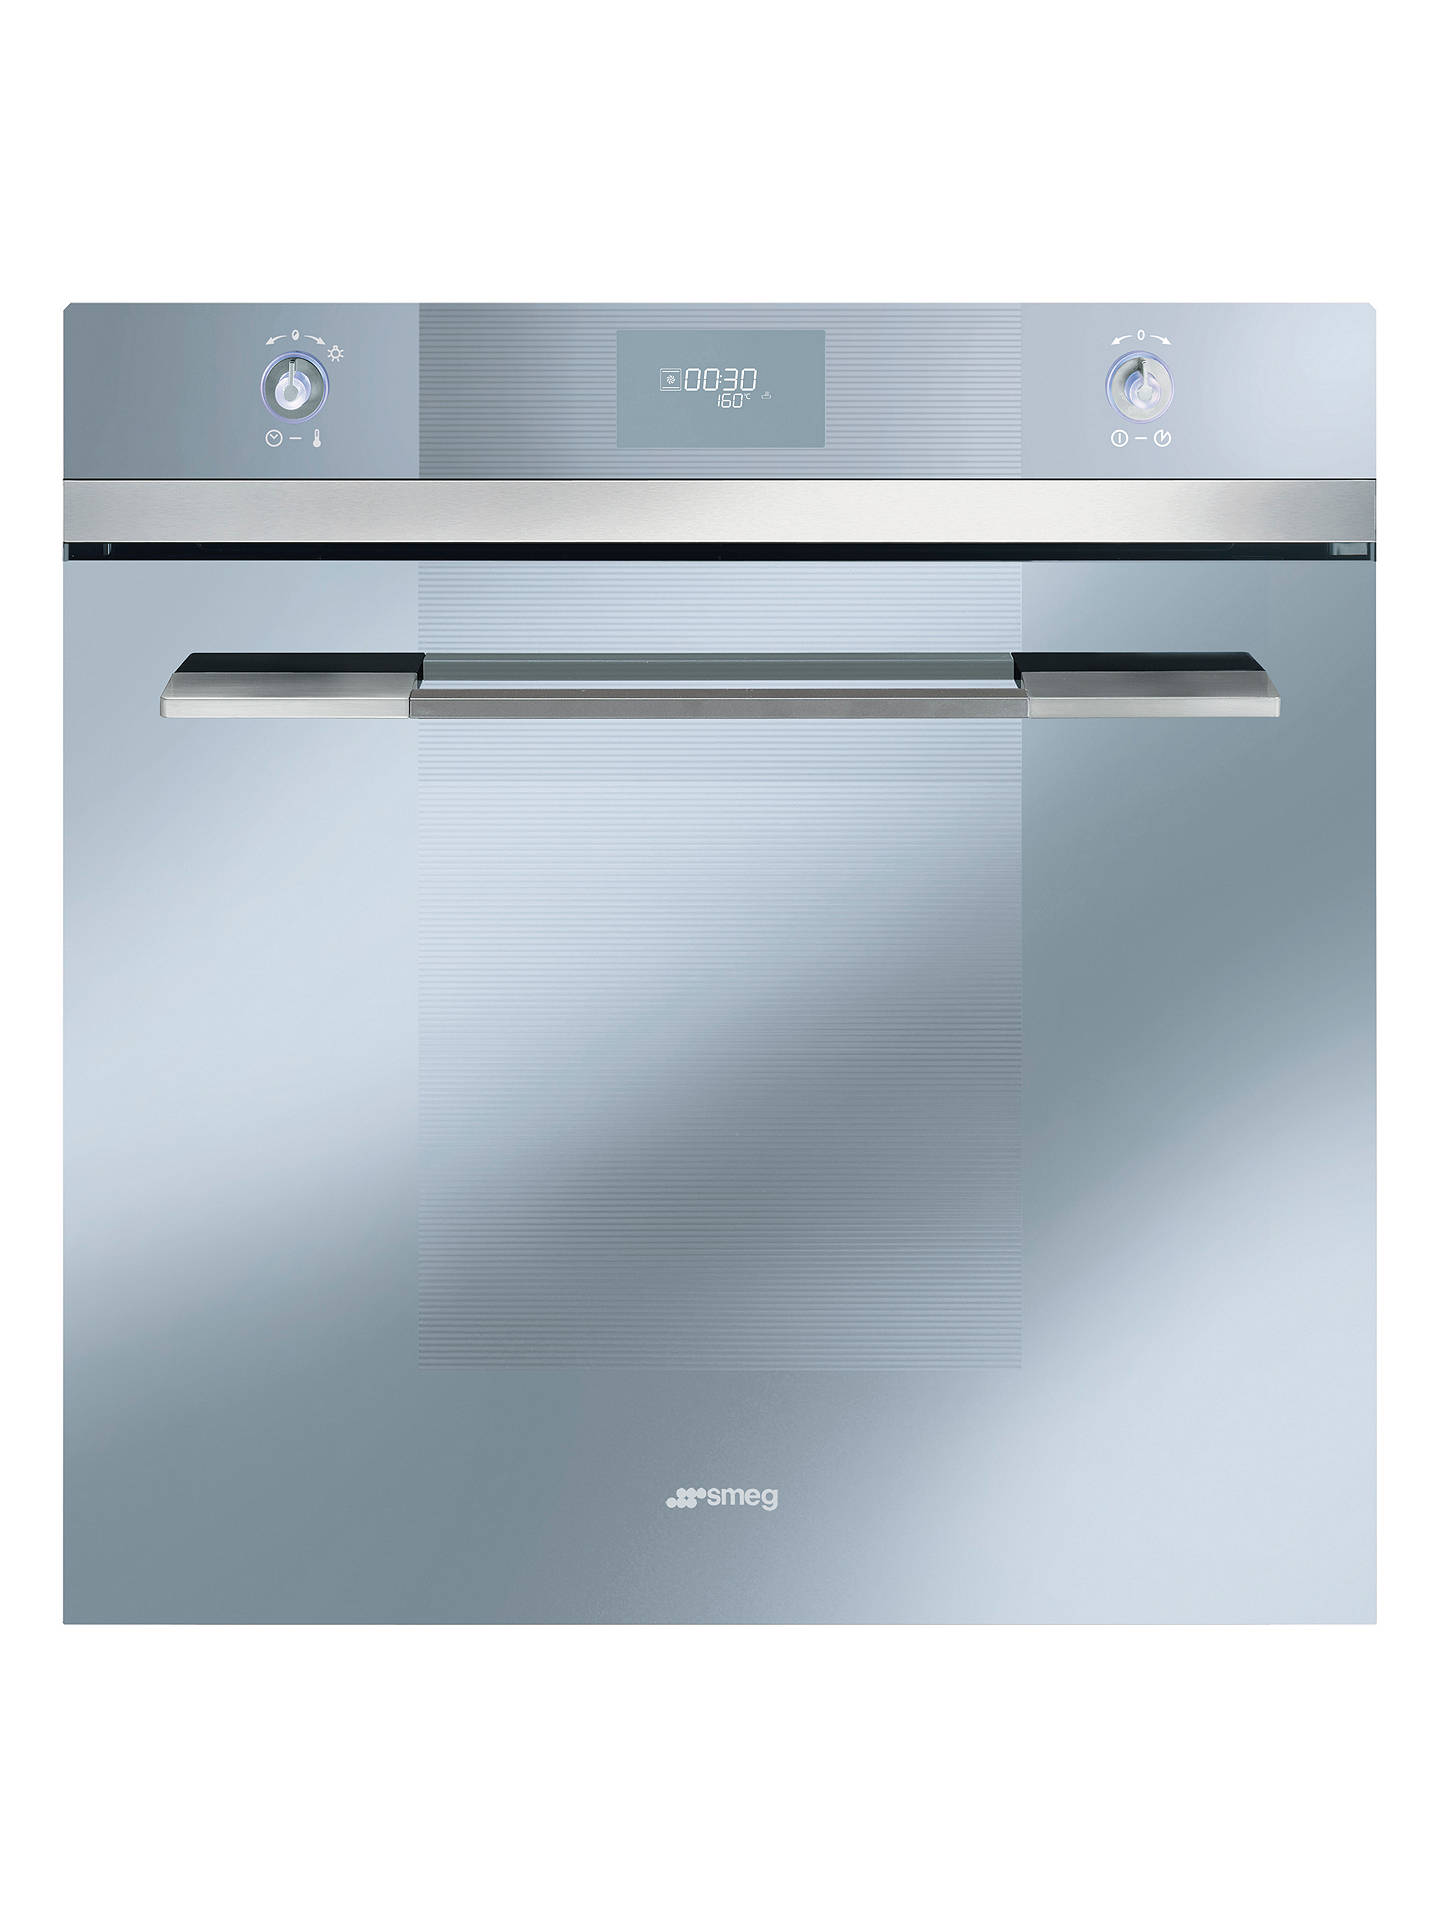 Smeg Sfp109s Single Electric Oven Silver Glass At John Lewis Partners How To Wire An Stove Outlet Doityourselfcom Community Buysmeg Online